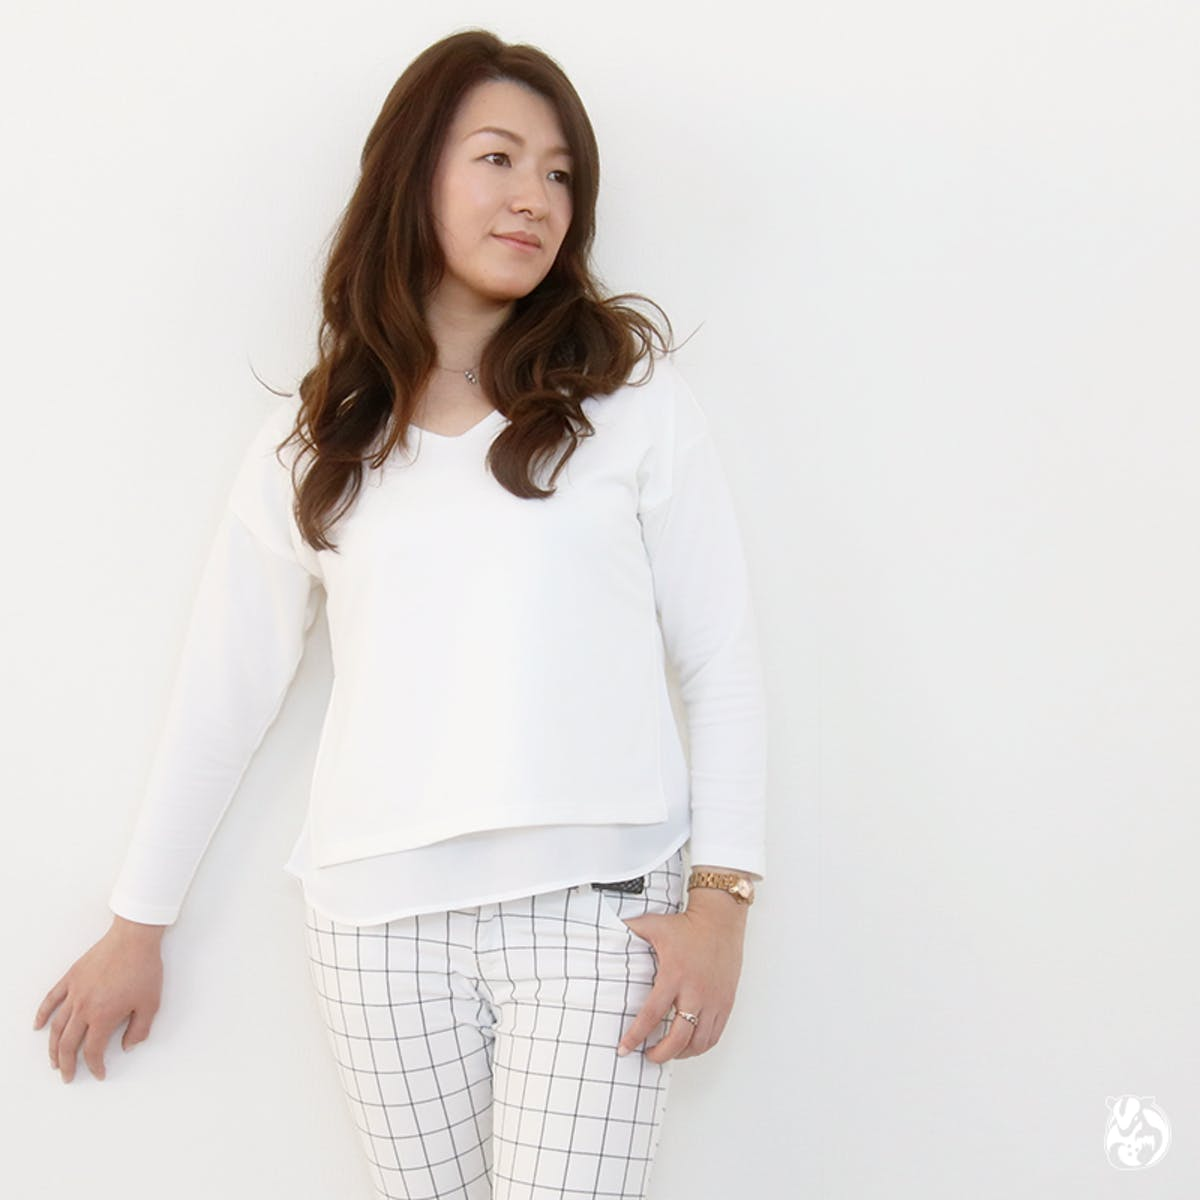 rie_2016-03-01.png